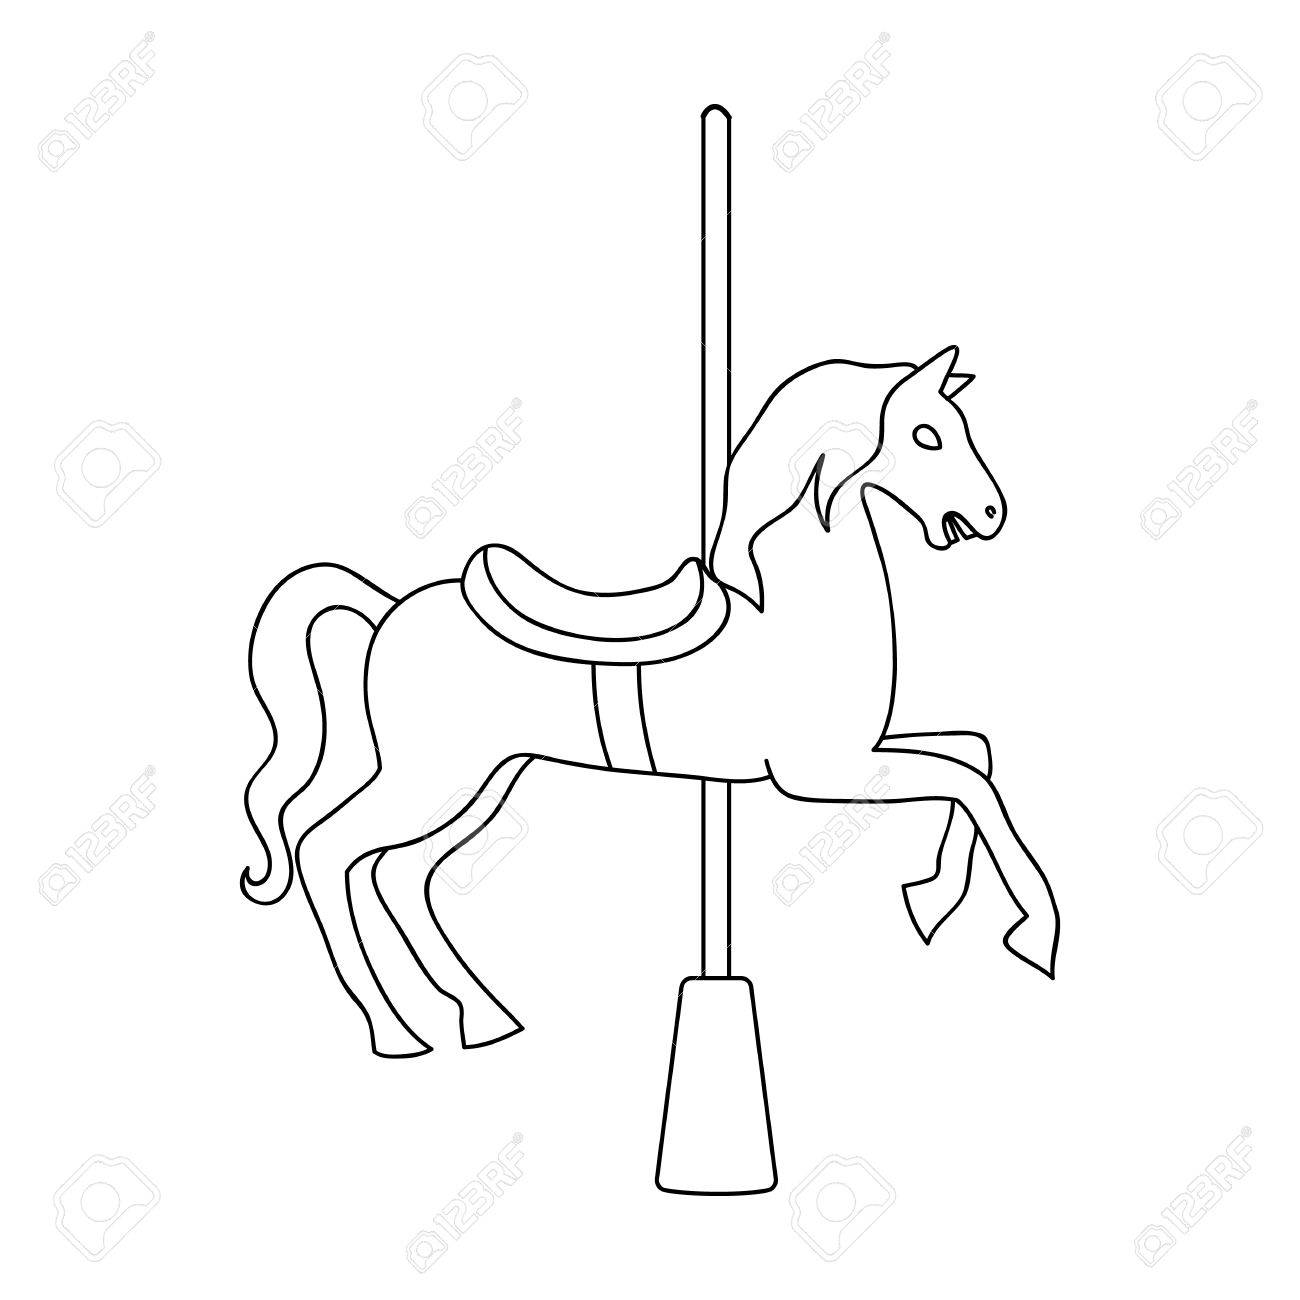 Carousel For Children Horse On The Pole For Riding Amusement Royalty Free Cliparts Vectors And Stock Illustration Image 74047104